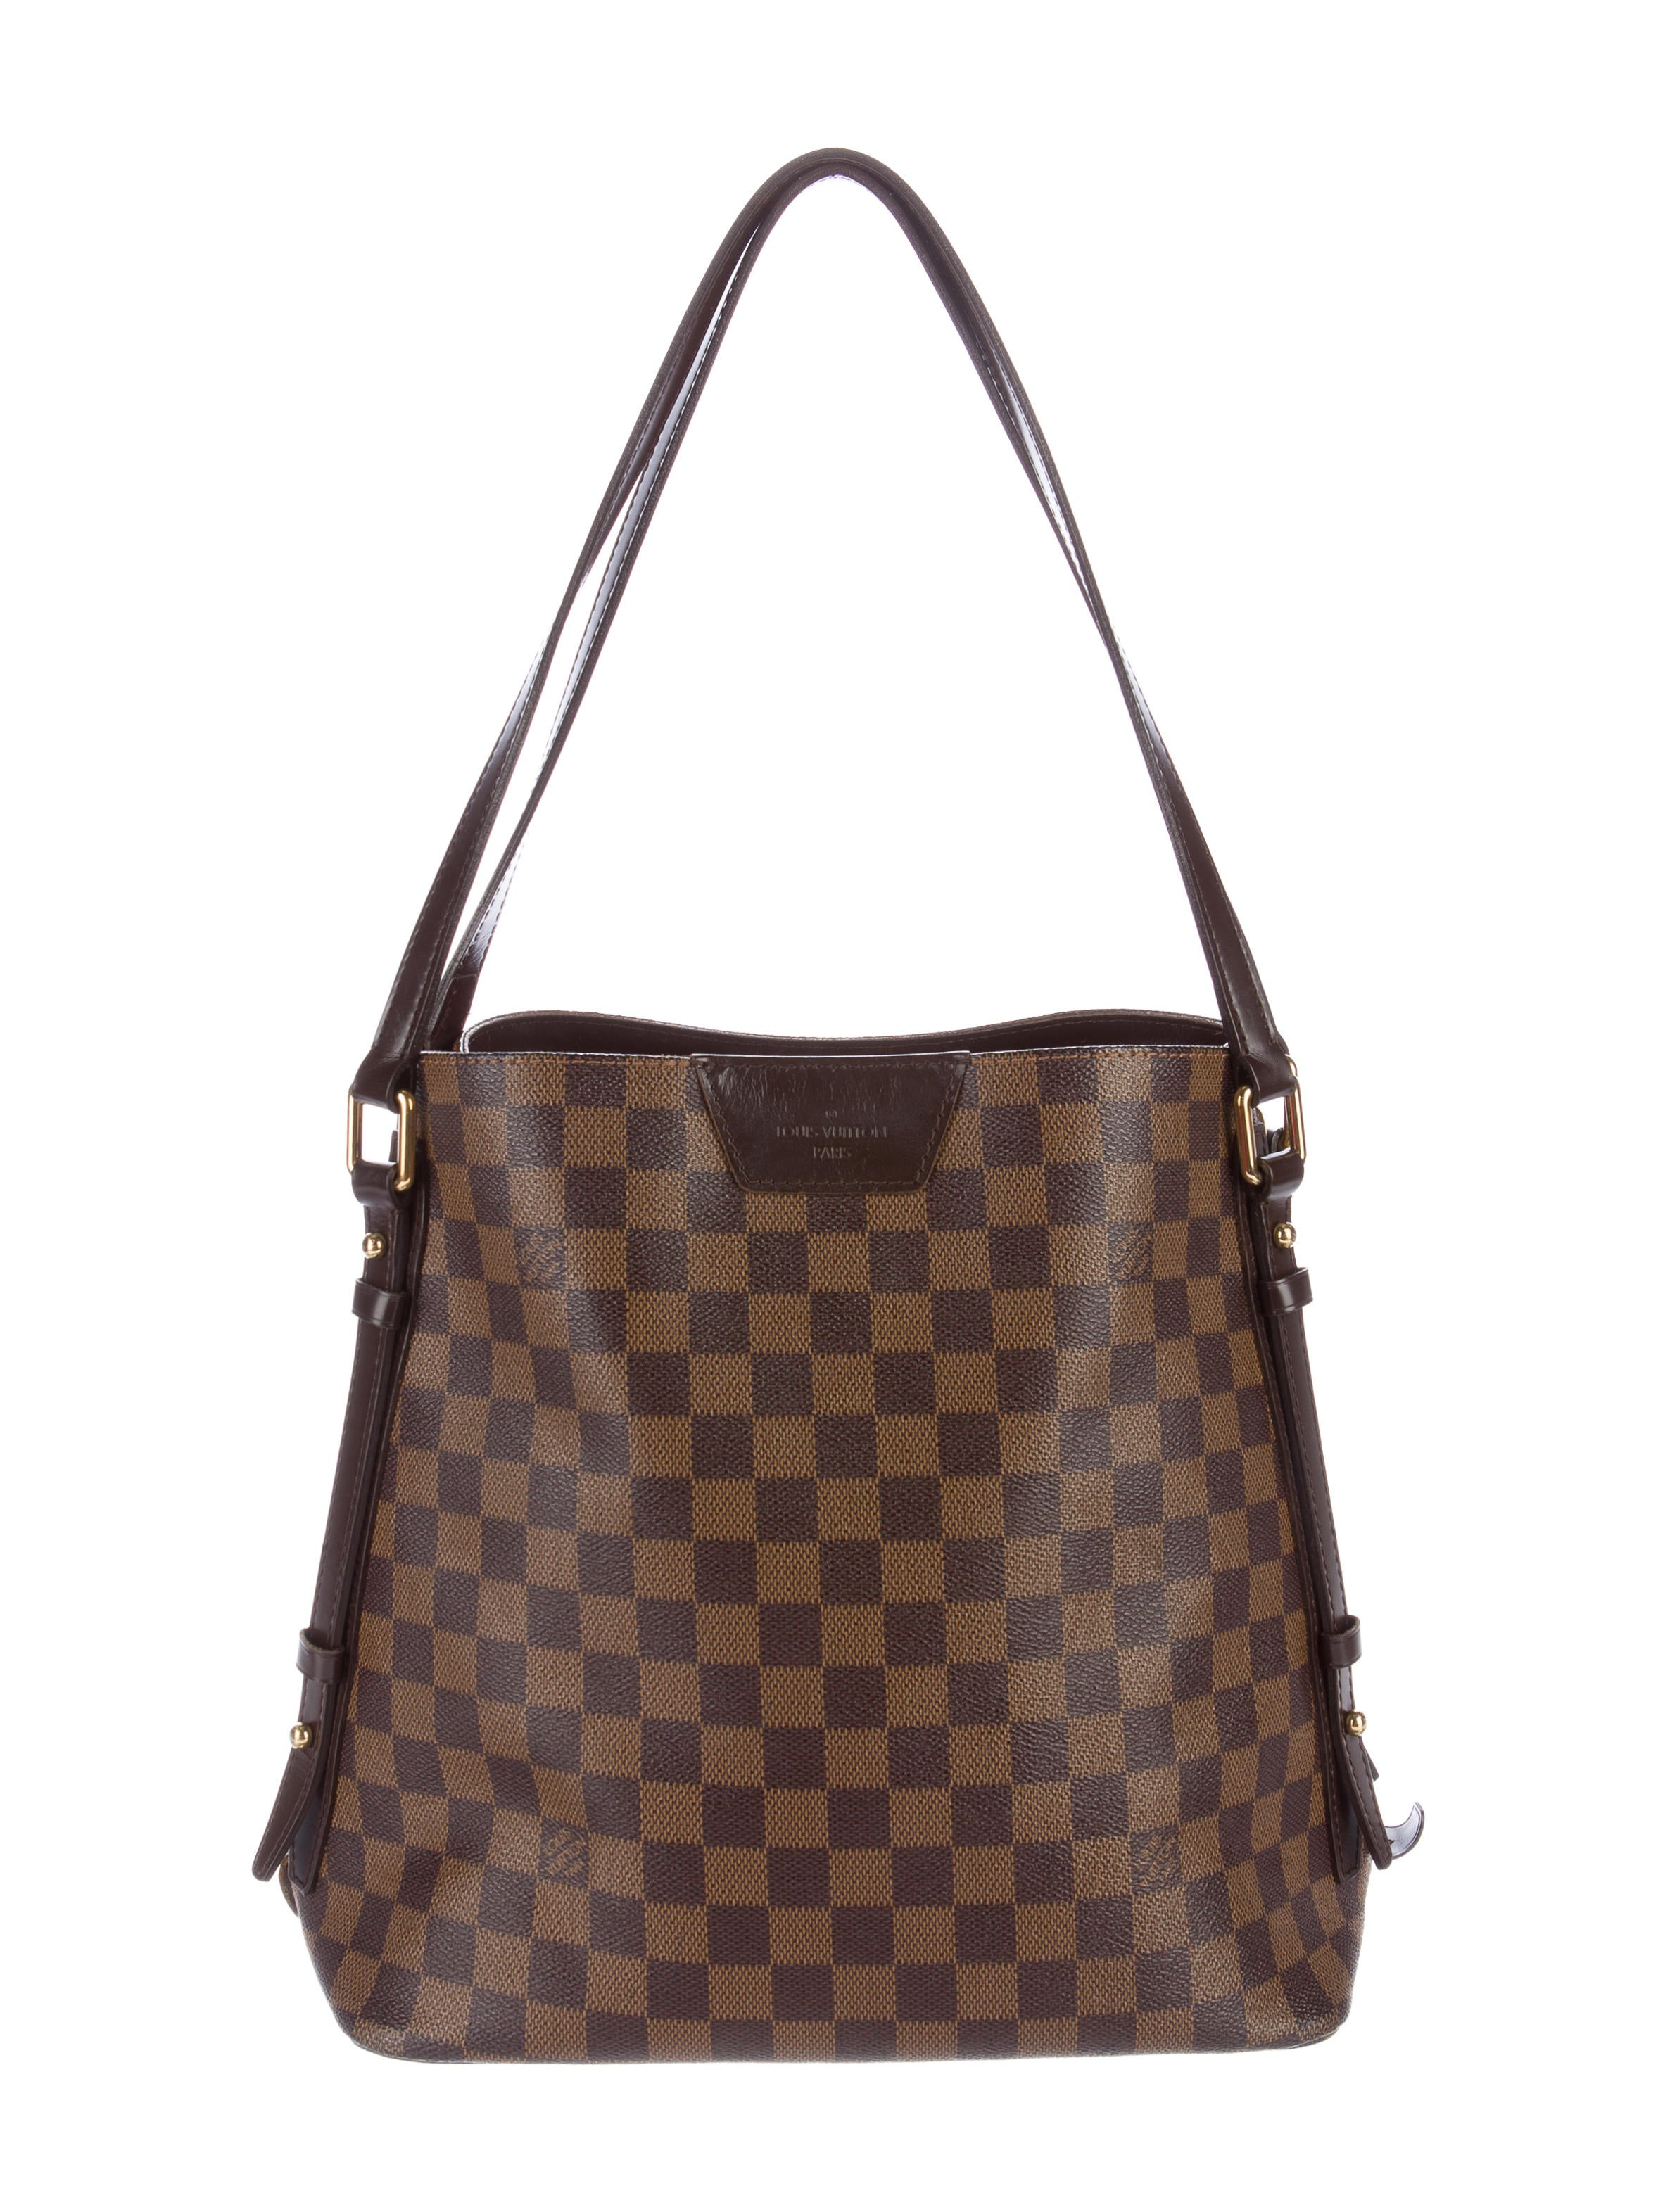 Sac Louis Vuitton Rivington Gm : Louis vuitton damier ebene cabas rivington gm handbags